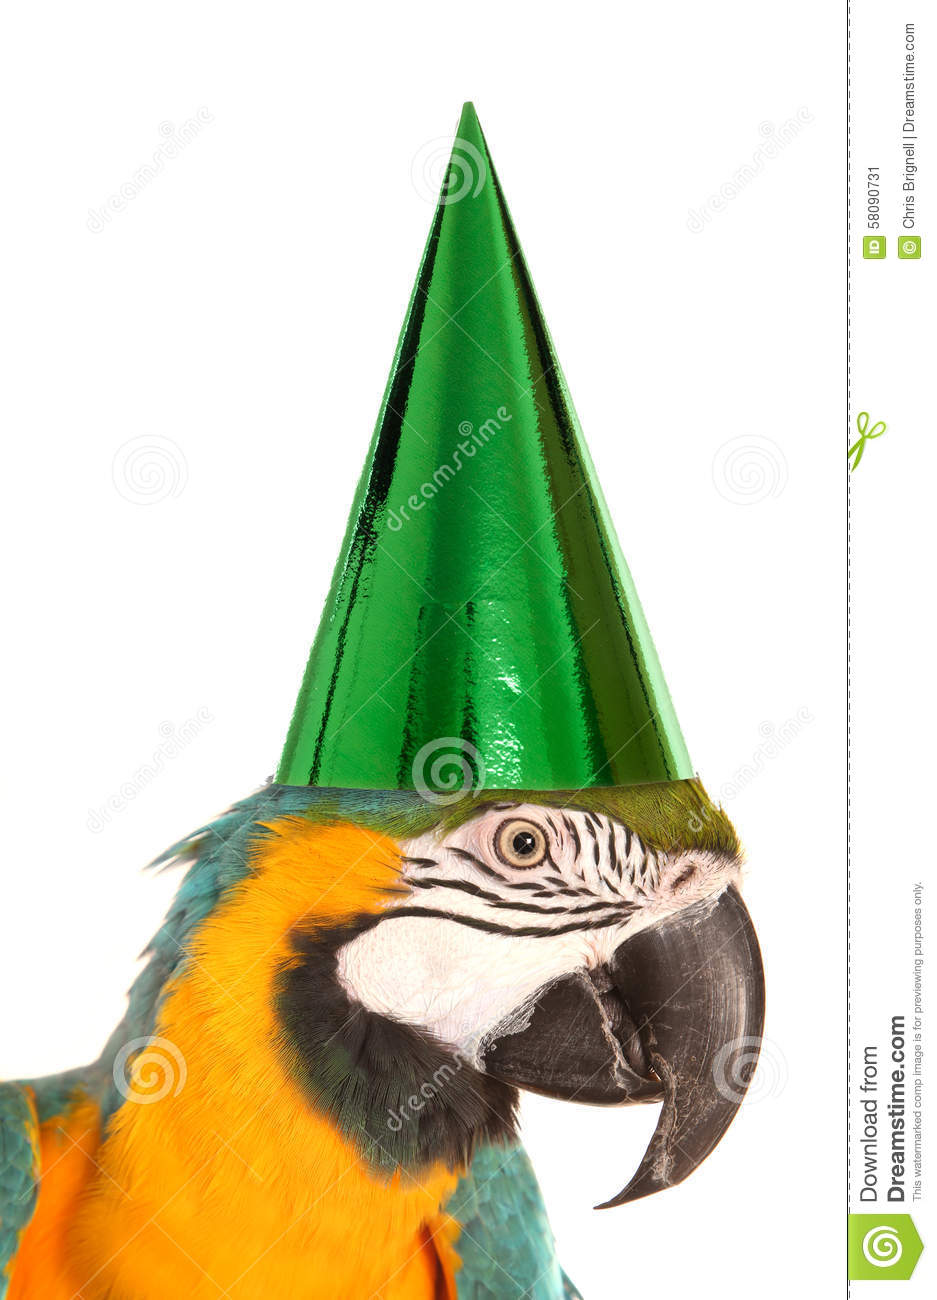 Parrot wearing a birthday party hat